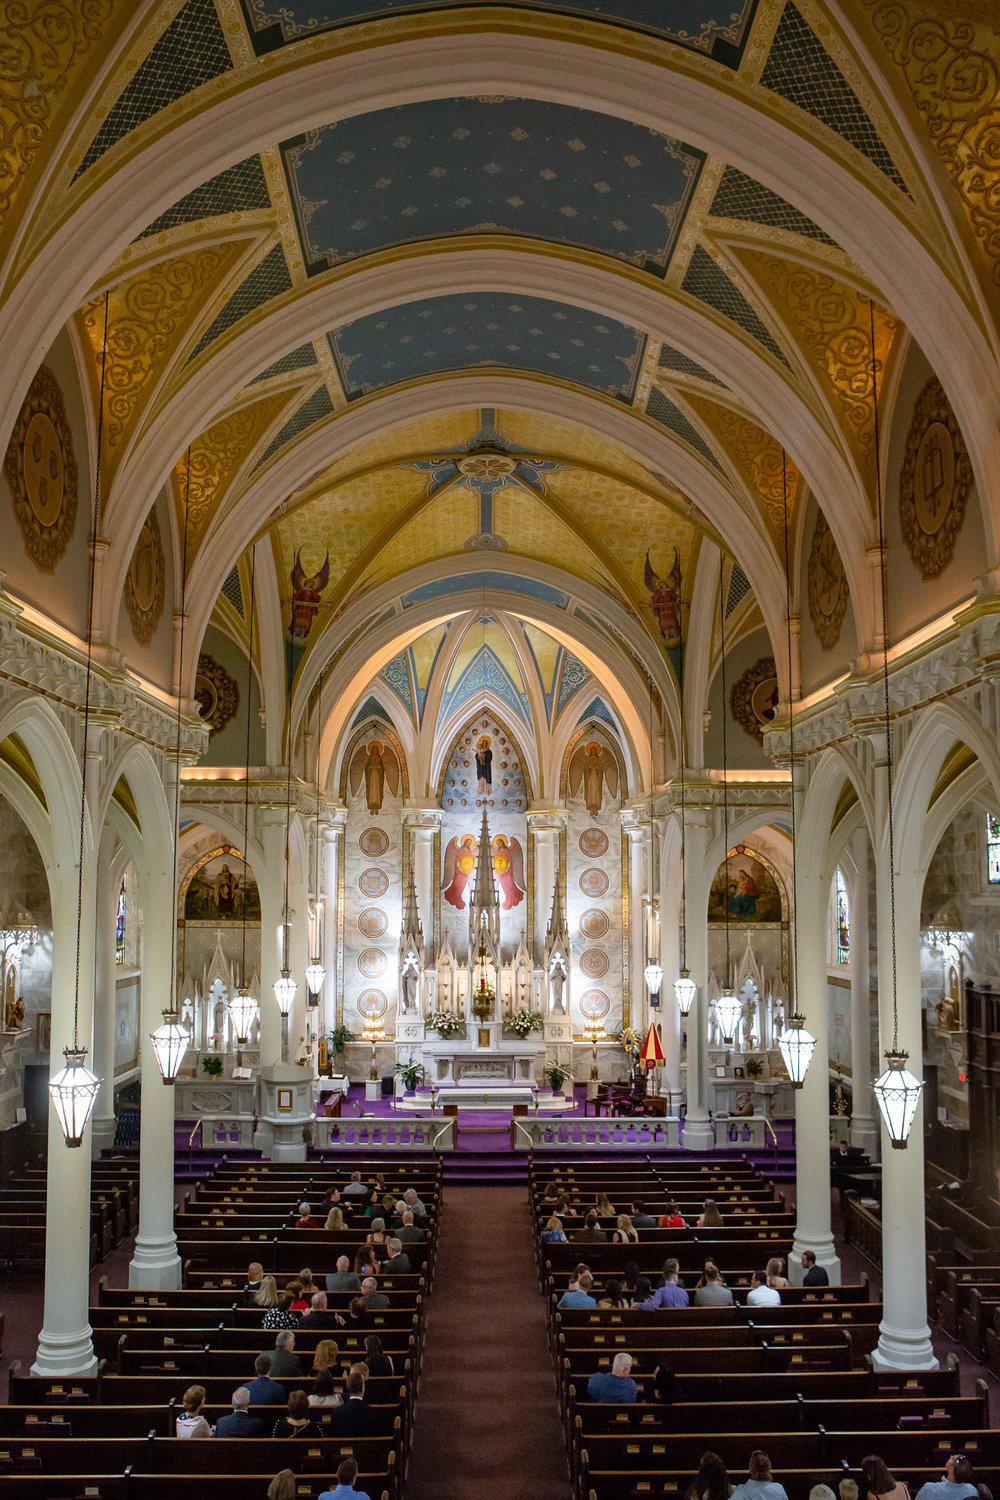 Wedding-Basilica-of-St-Mary-of-the-Angels-Olean-NY-0362.jpg